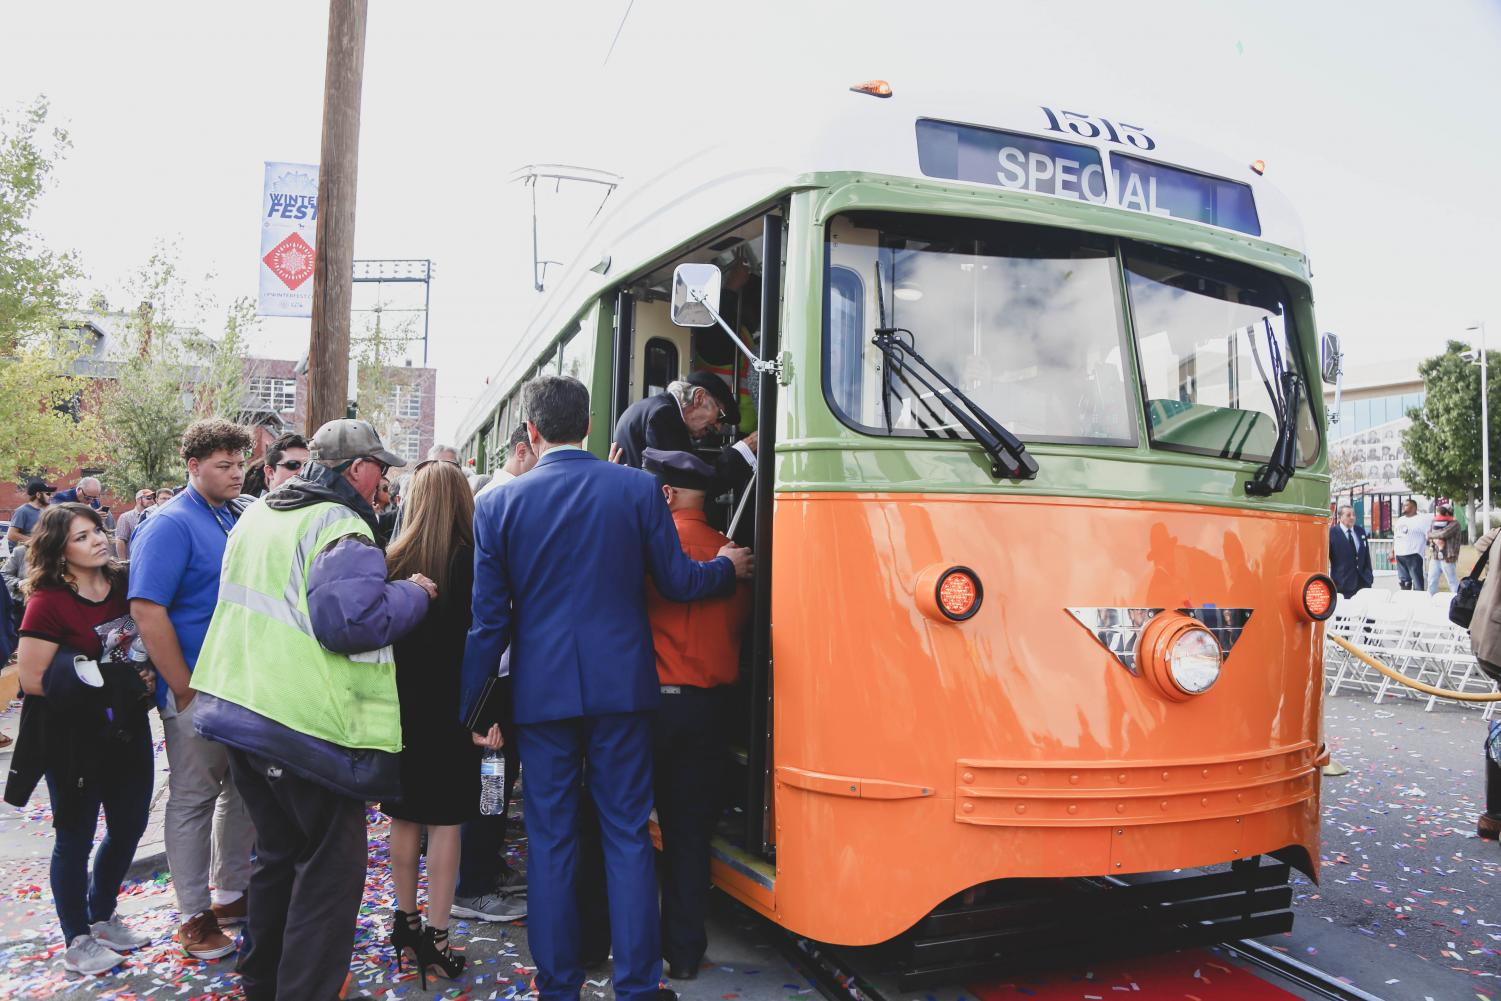 The+special+guests+had+the+opportunity+to+ride+the+streetcar+after+the+inauguration.+